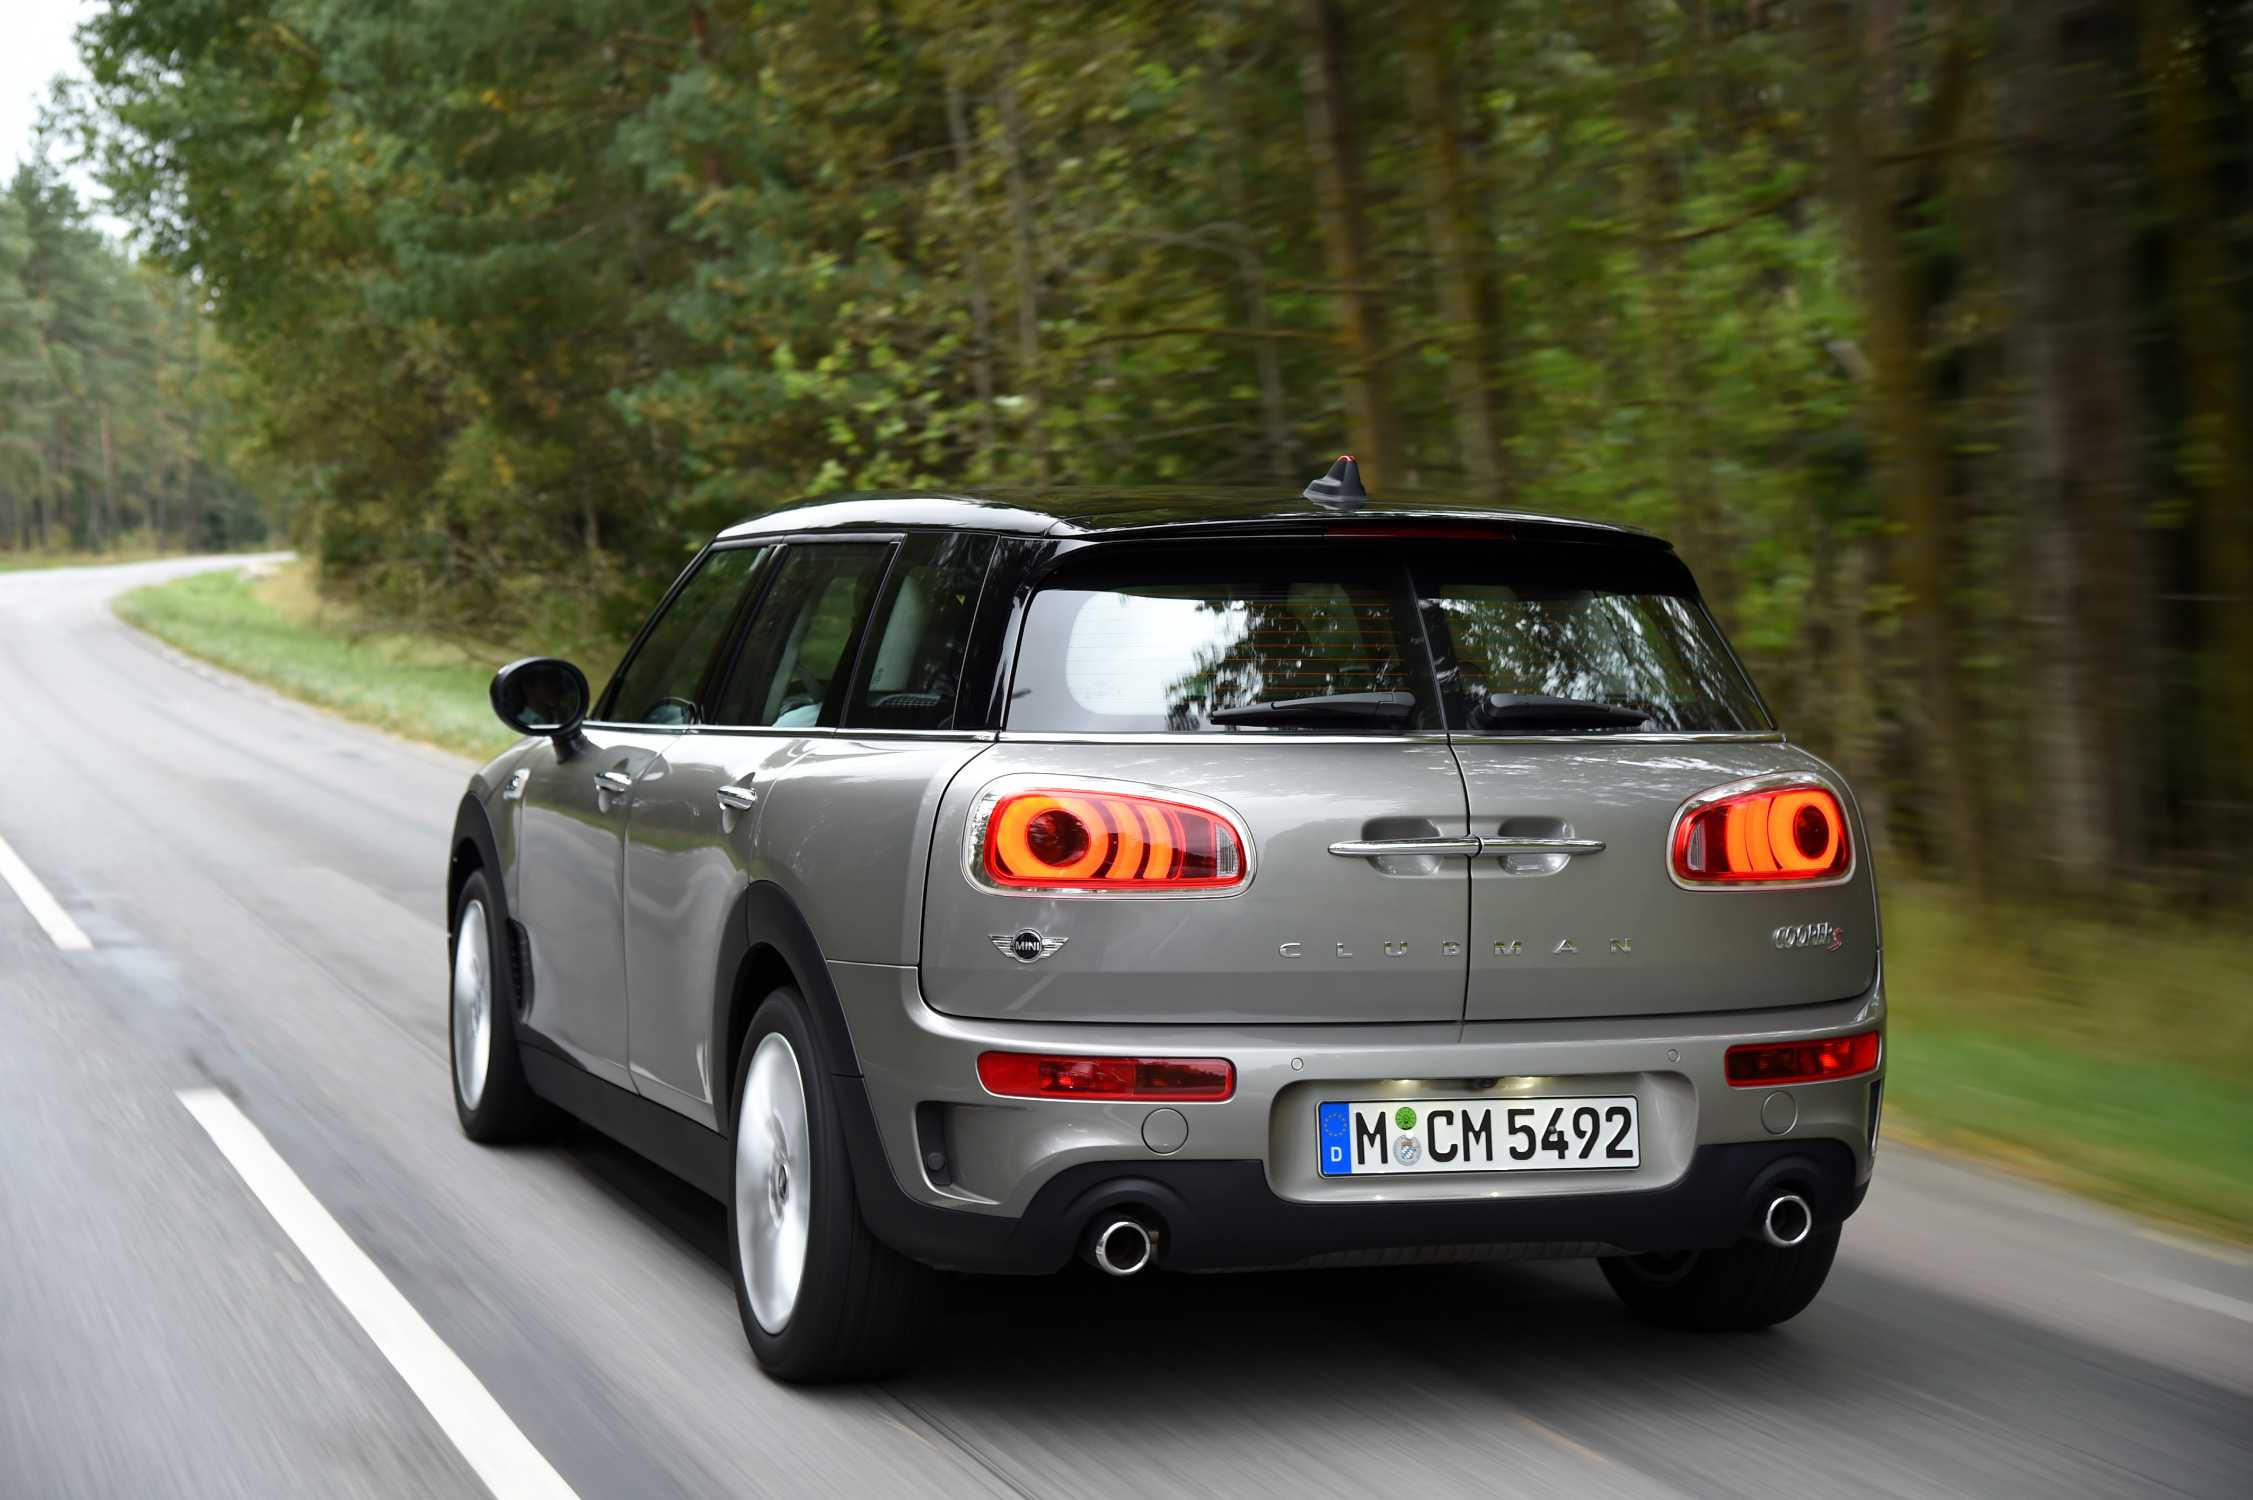 mini cooper s clubman melting silver metallic 09 2015. Black Bedroom Furniture Sets. Home Design Ideas